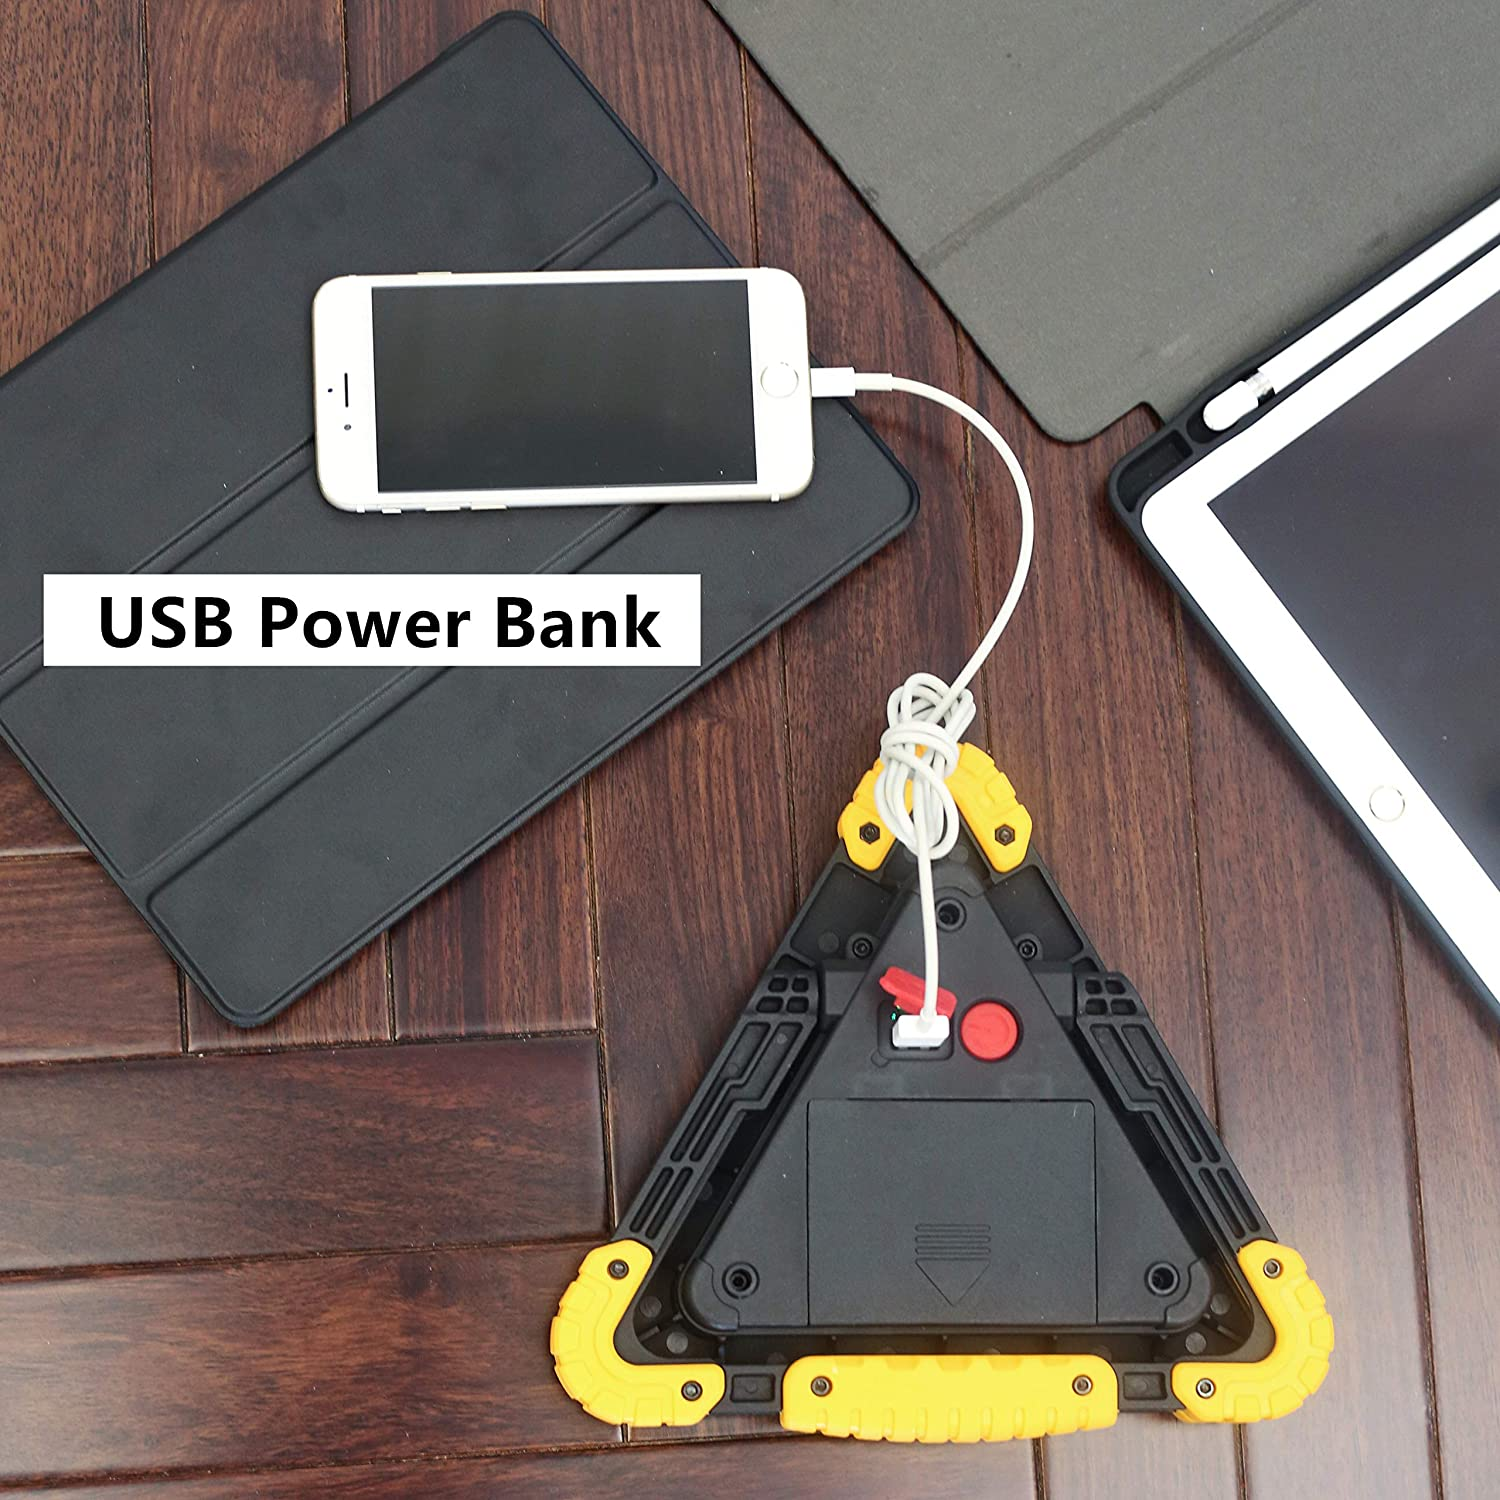 Triangle Emergency Warning Light for Rodeside Assistance Construction Site e-unicorn 5559078166 USB Rechargeable Power Bank Floodlight for Camping Doogaxoo 30W LED Portable Work Light Car Repairing Hiking